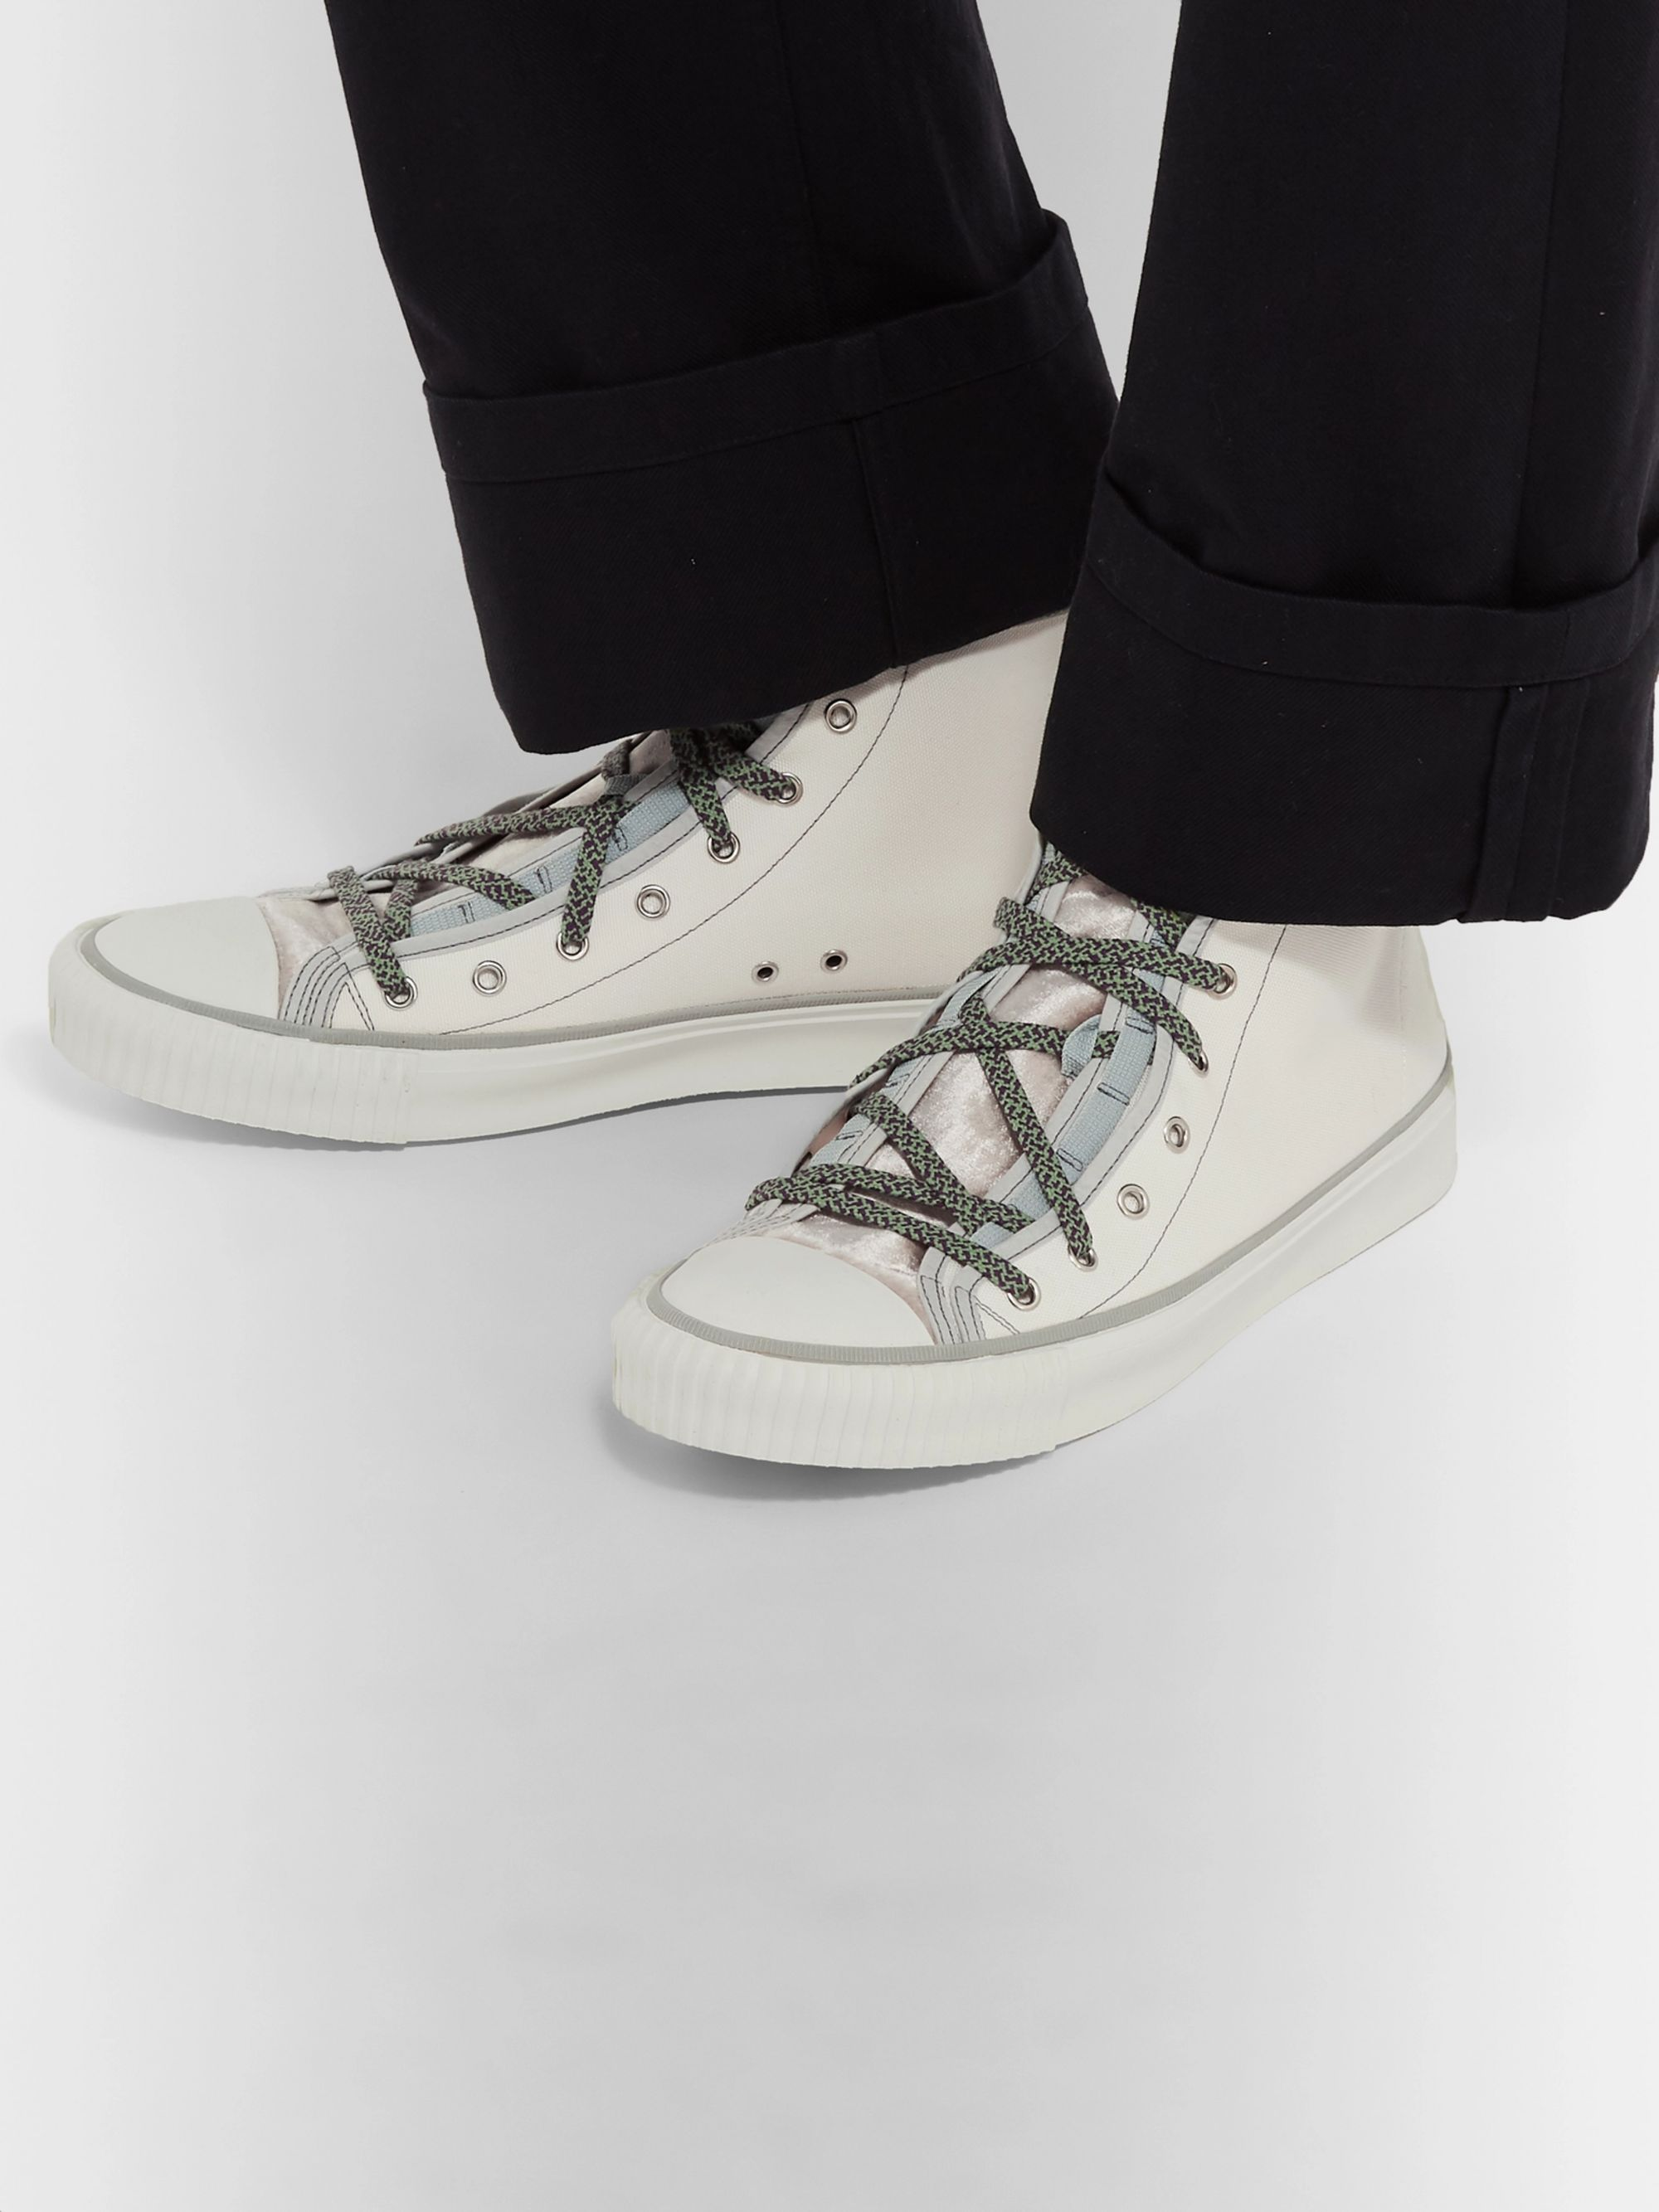 Lanvin Canvas and Velvet High-Top Sneakers